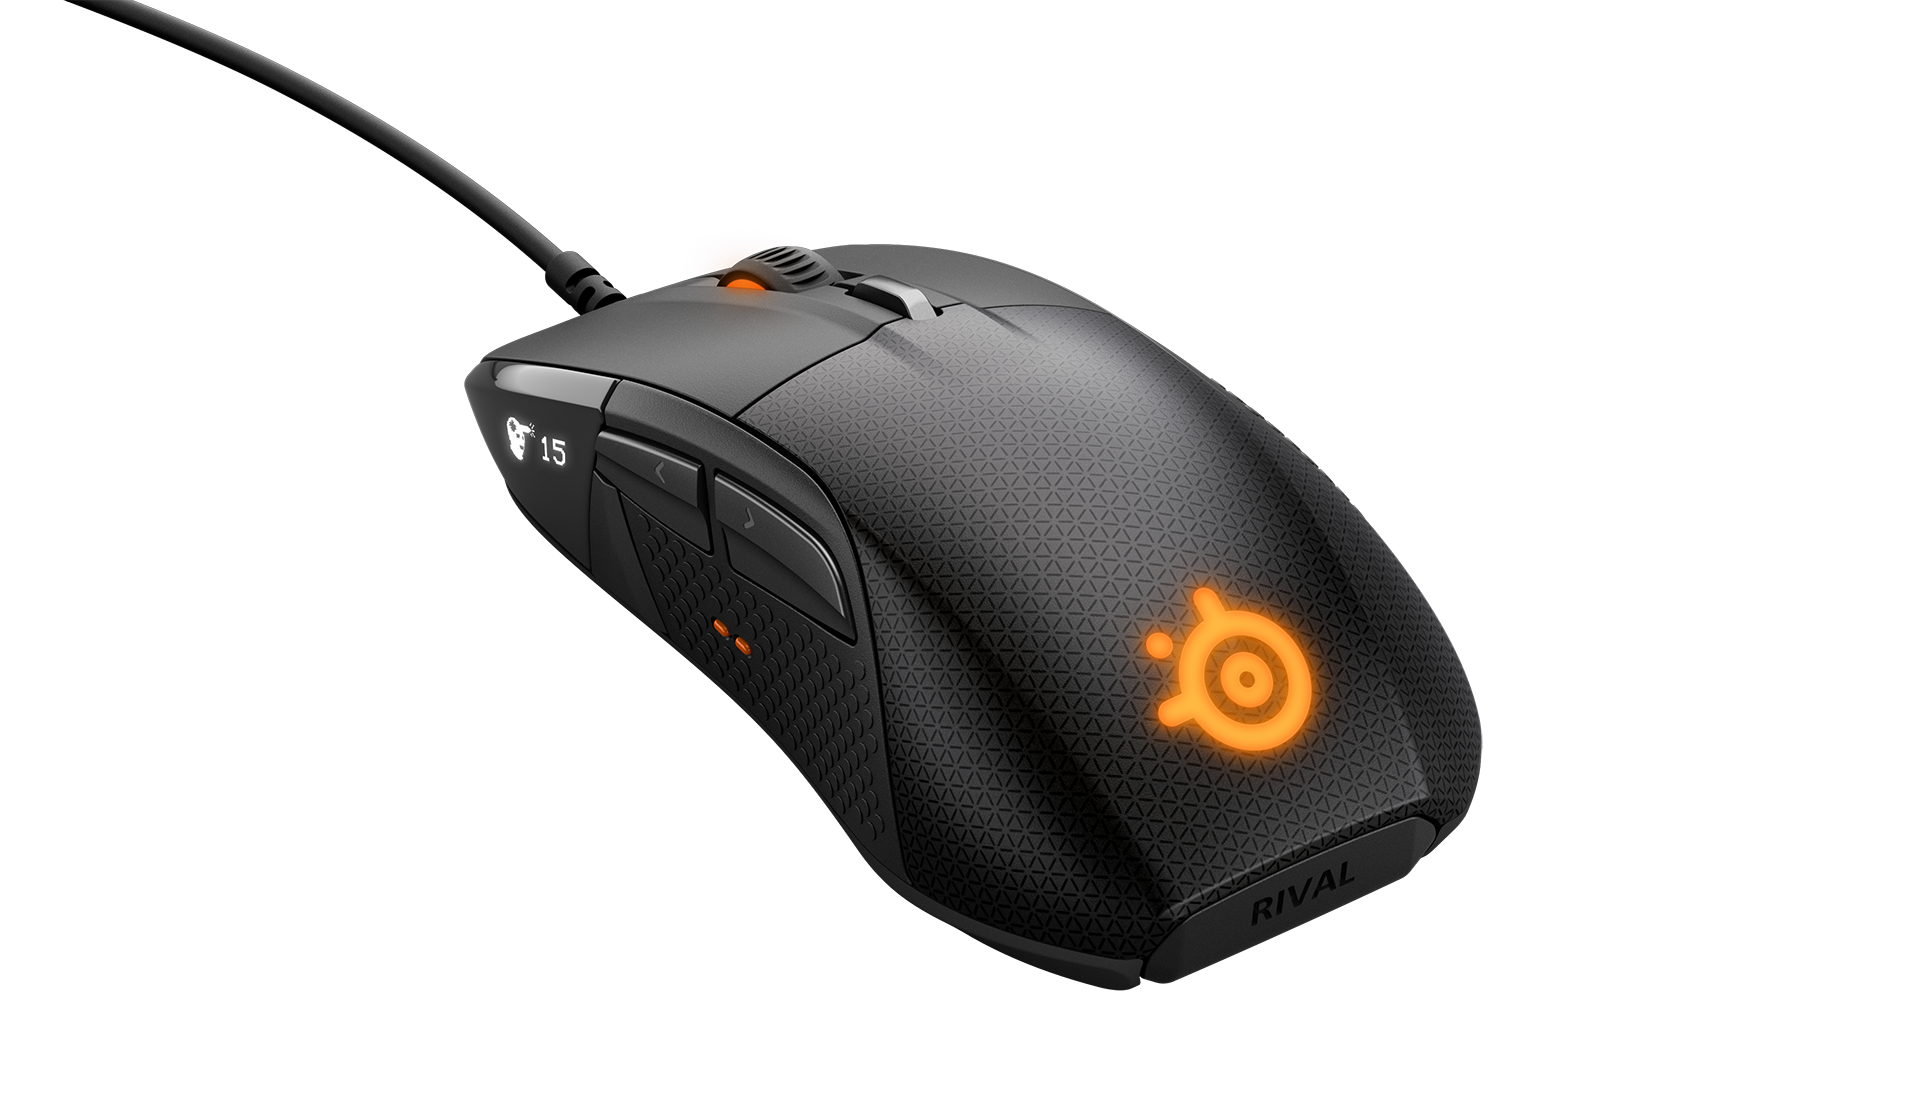 New 'Smart Gaming Mouse' Has A Tiny Screen On It For Some Reason